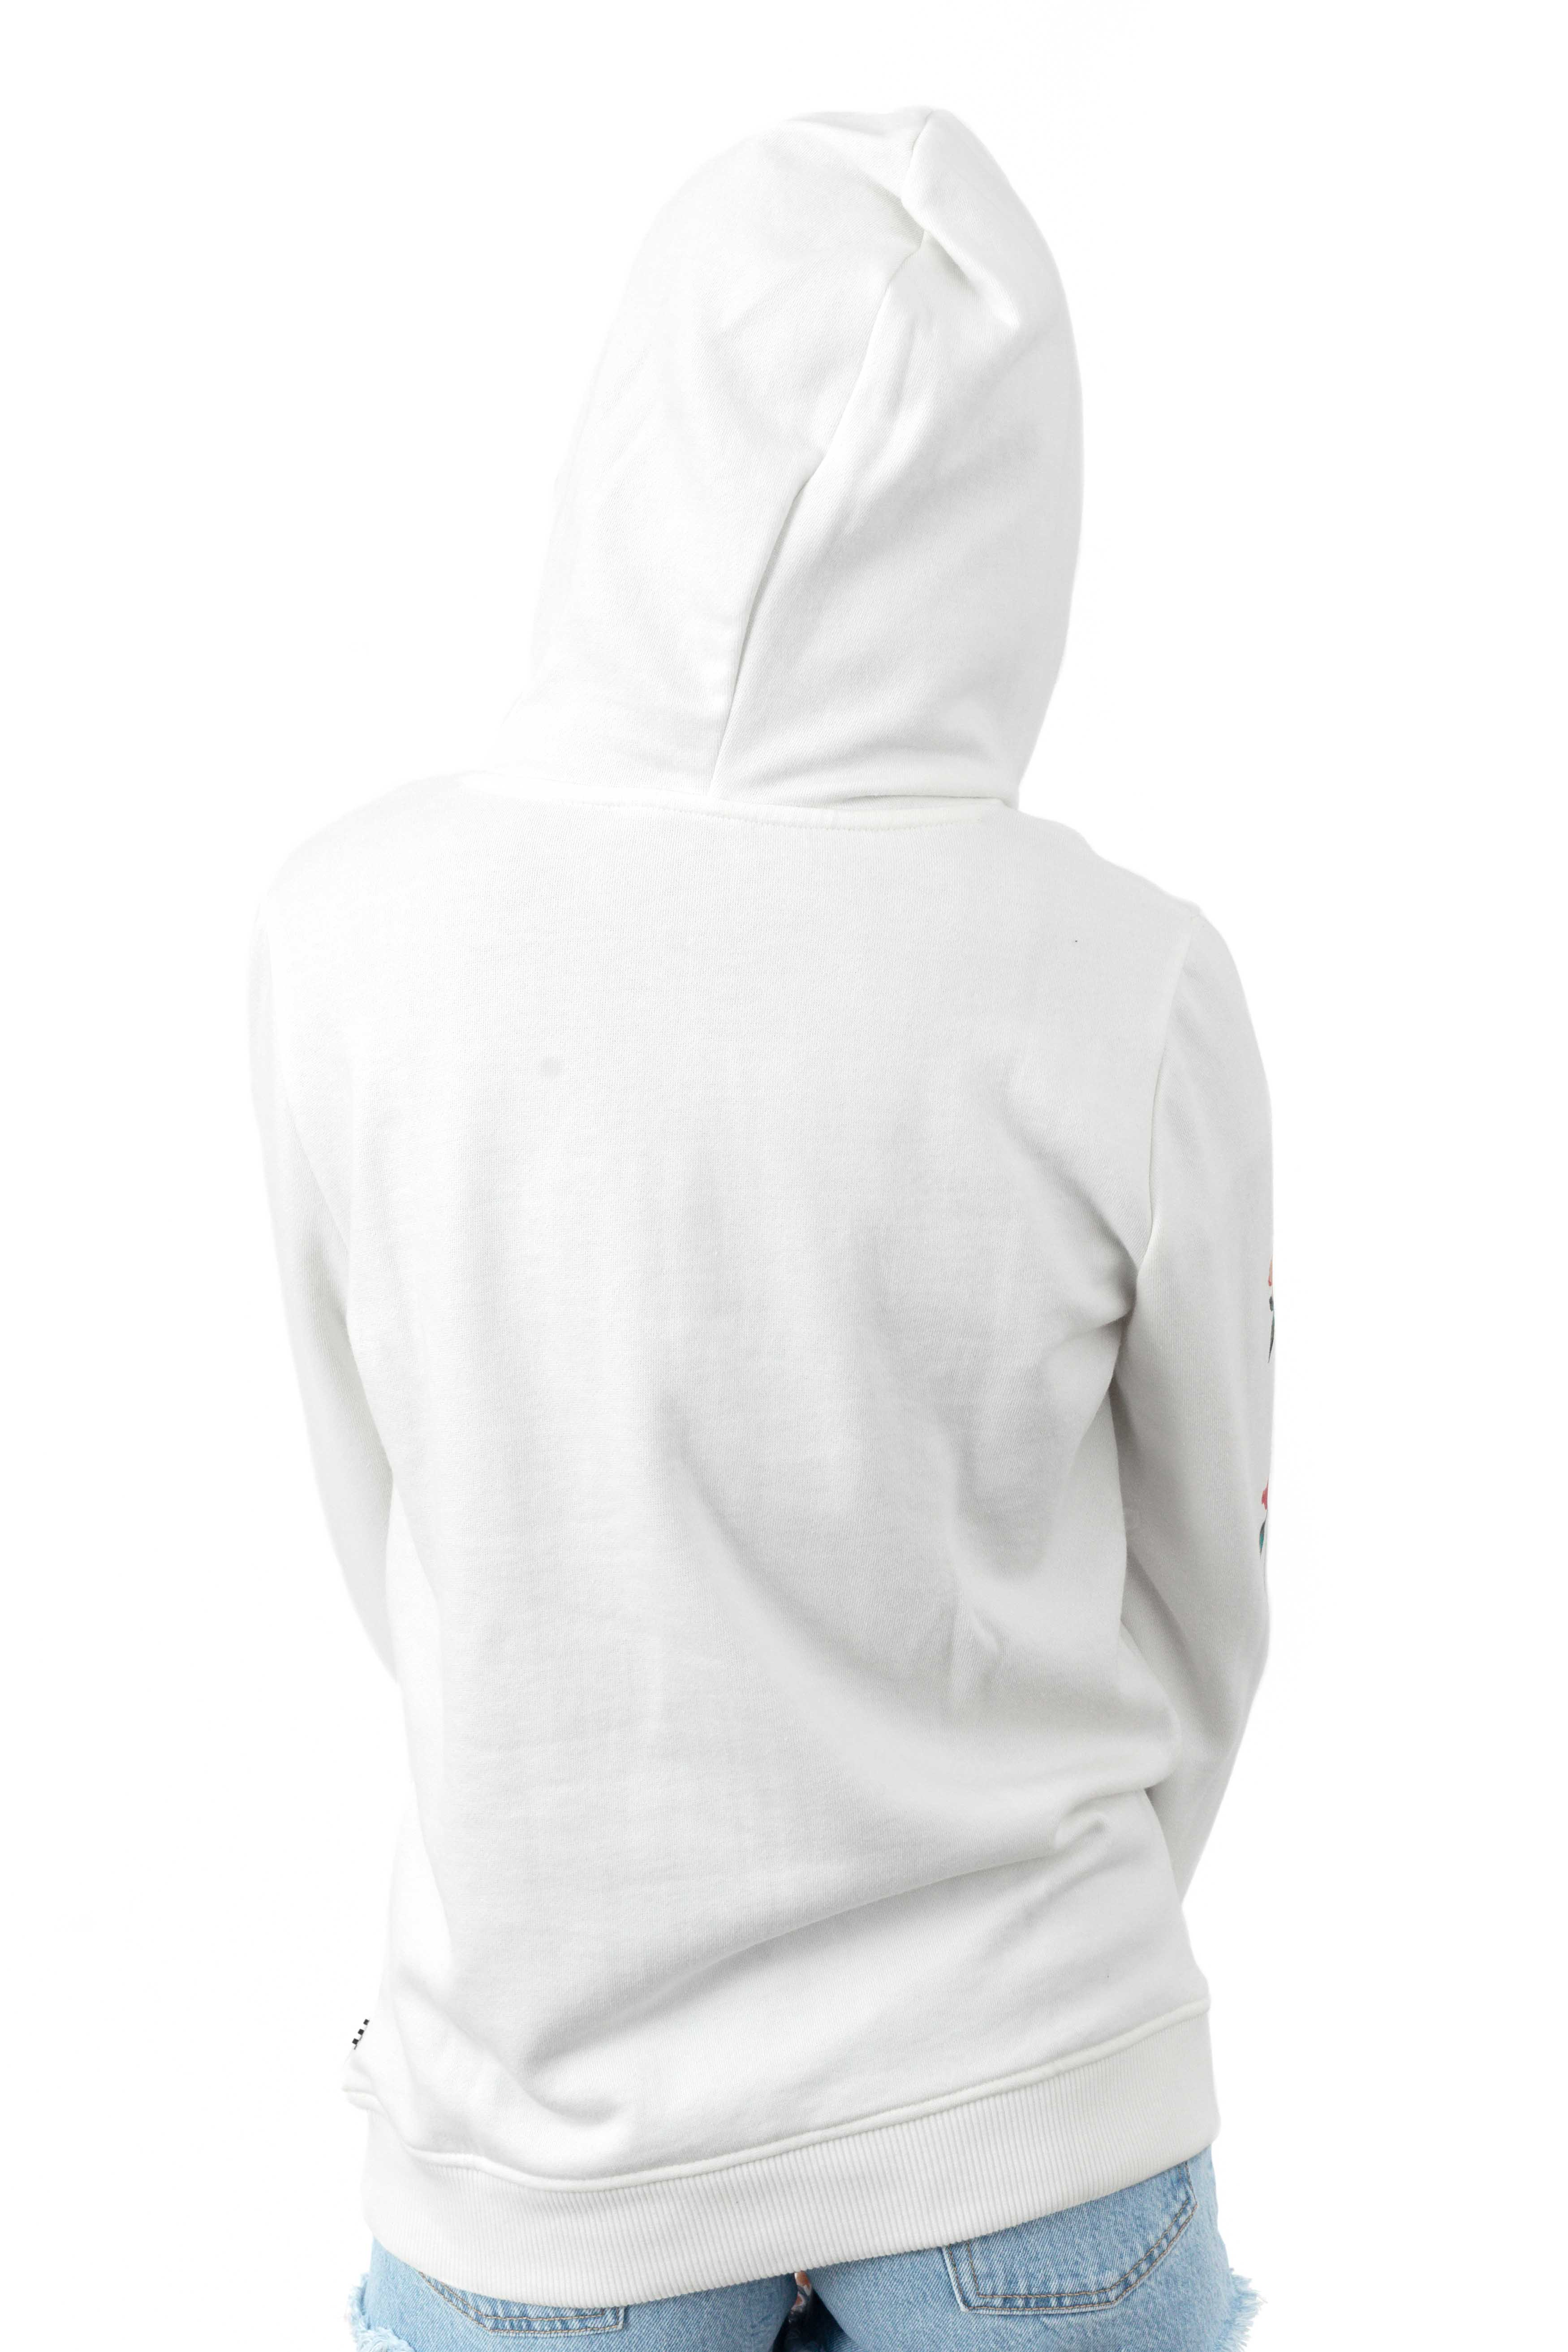 Barbed Floral Pullover Hoodie - Marshmallow  3